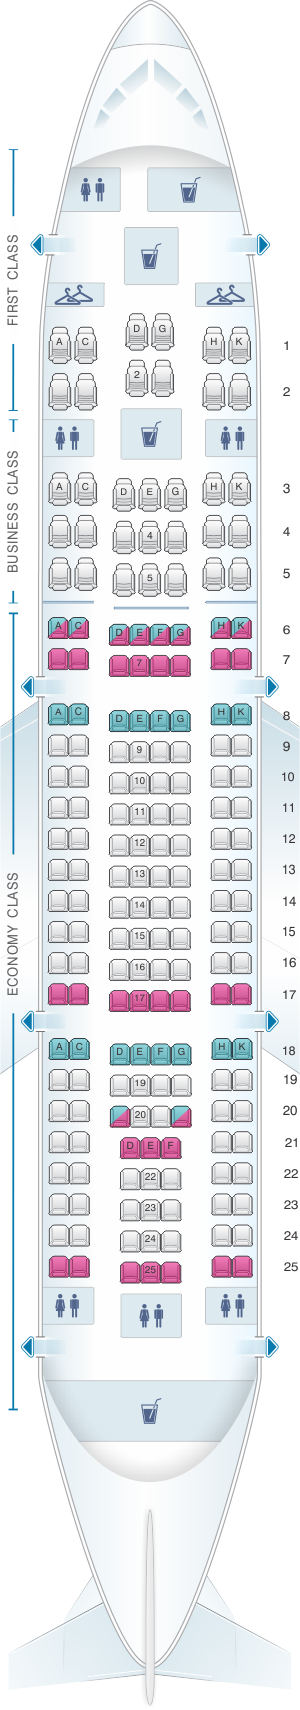 Seat map for Yemenia - Yemen Airways Airbus A310 325 190pax